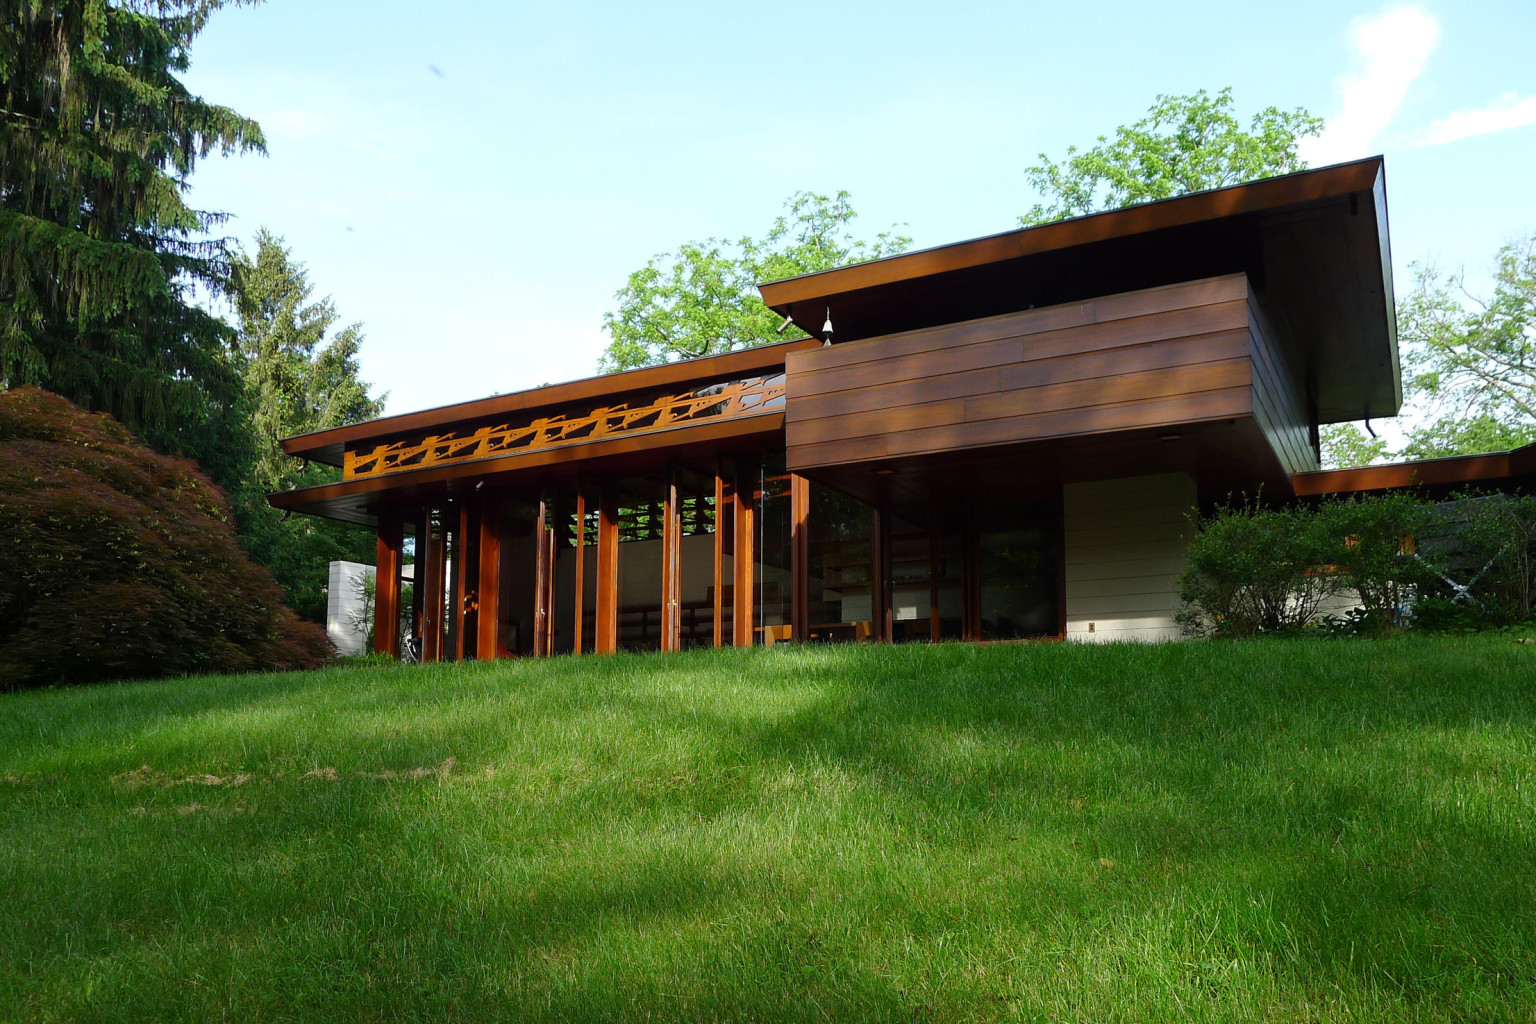 The bachman wilson house and 12 other frank lloyd wright - Frank lloyd wright houses for sale ...